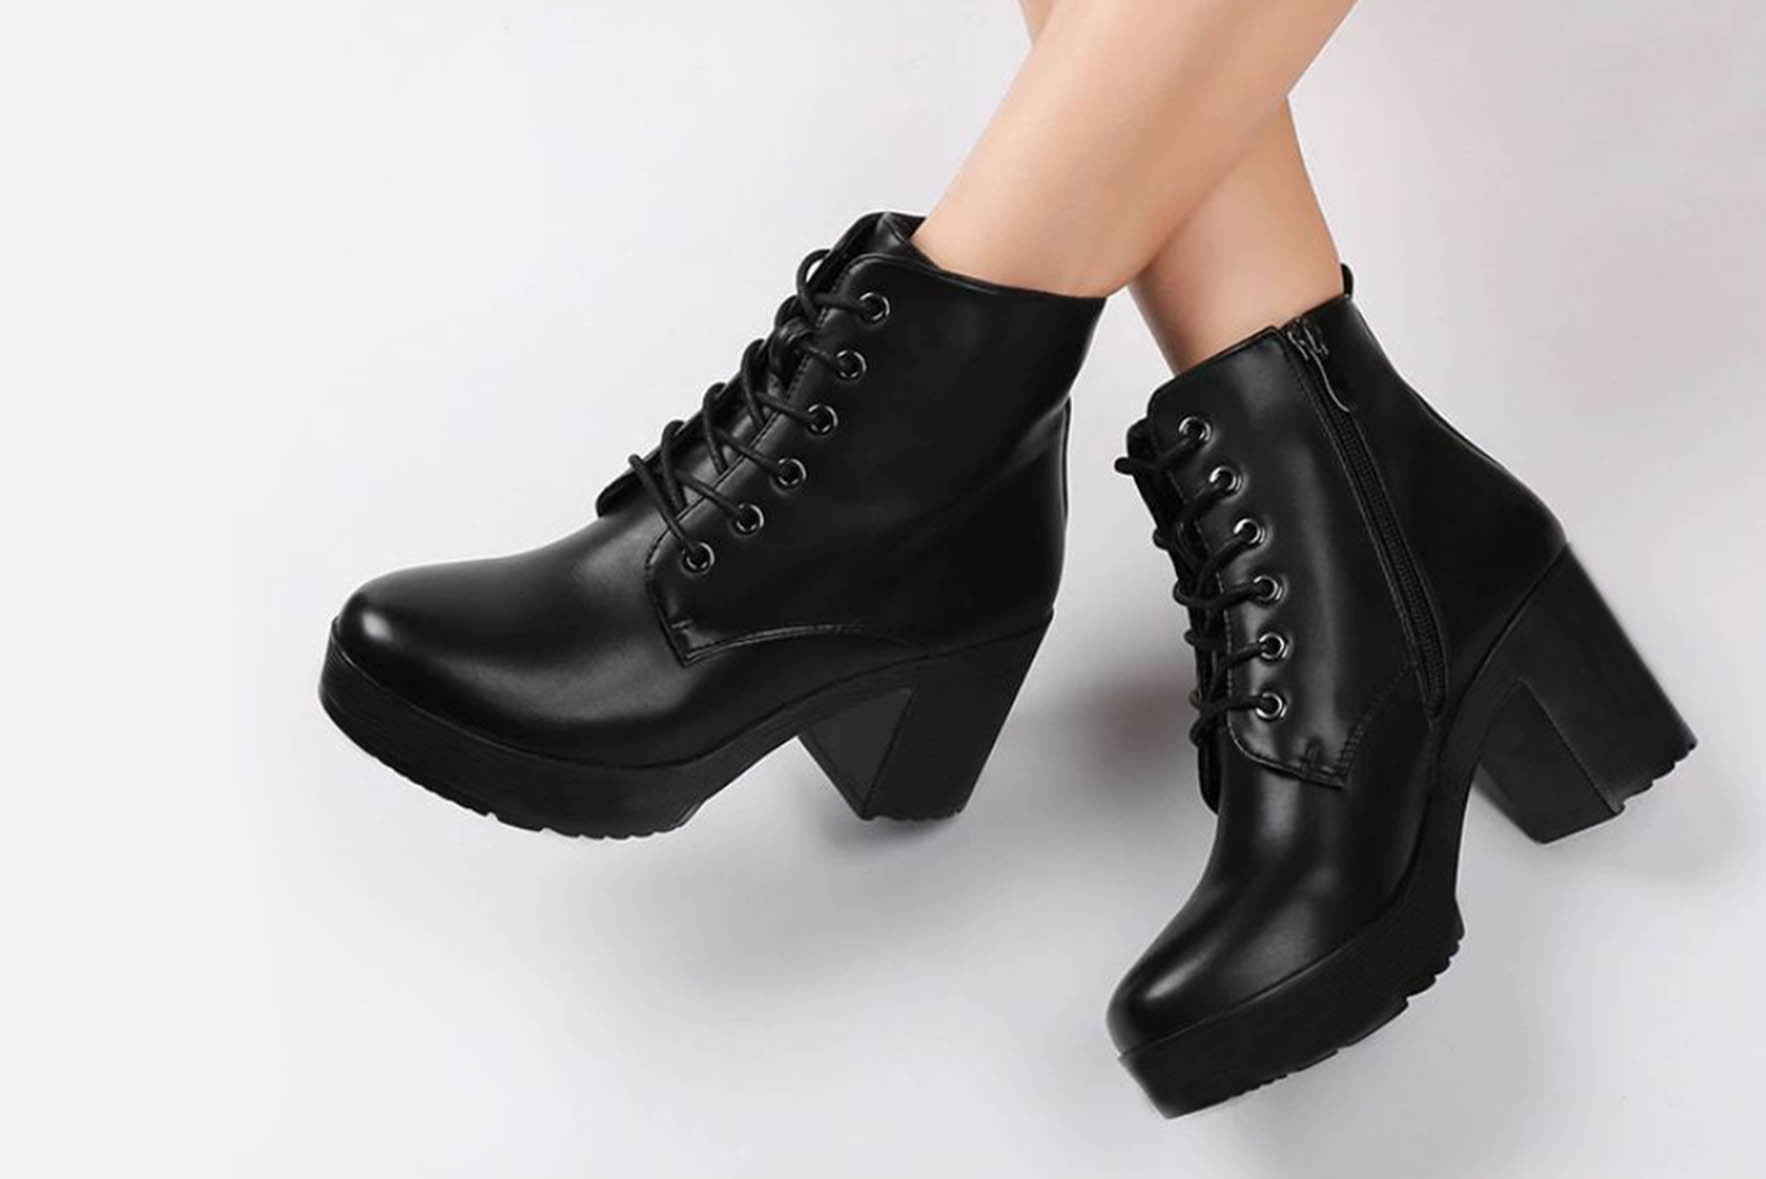 Super Platform Boot Black